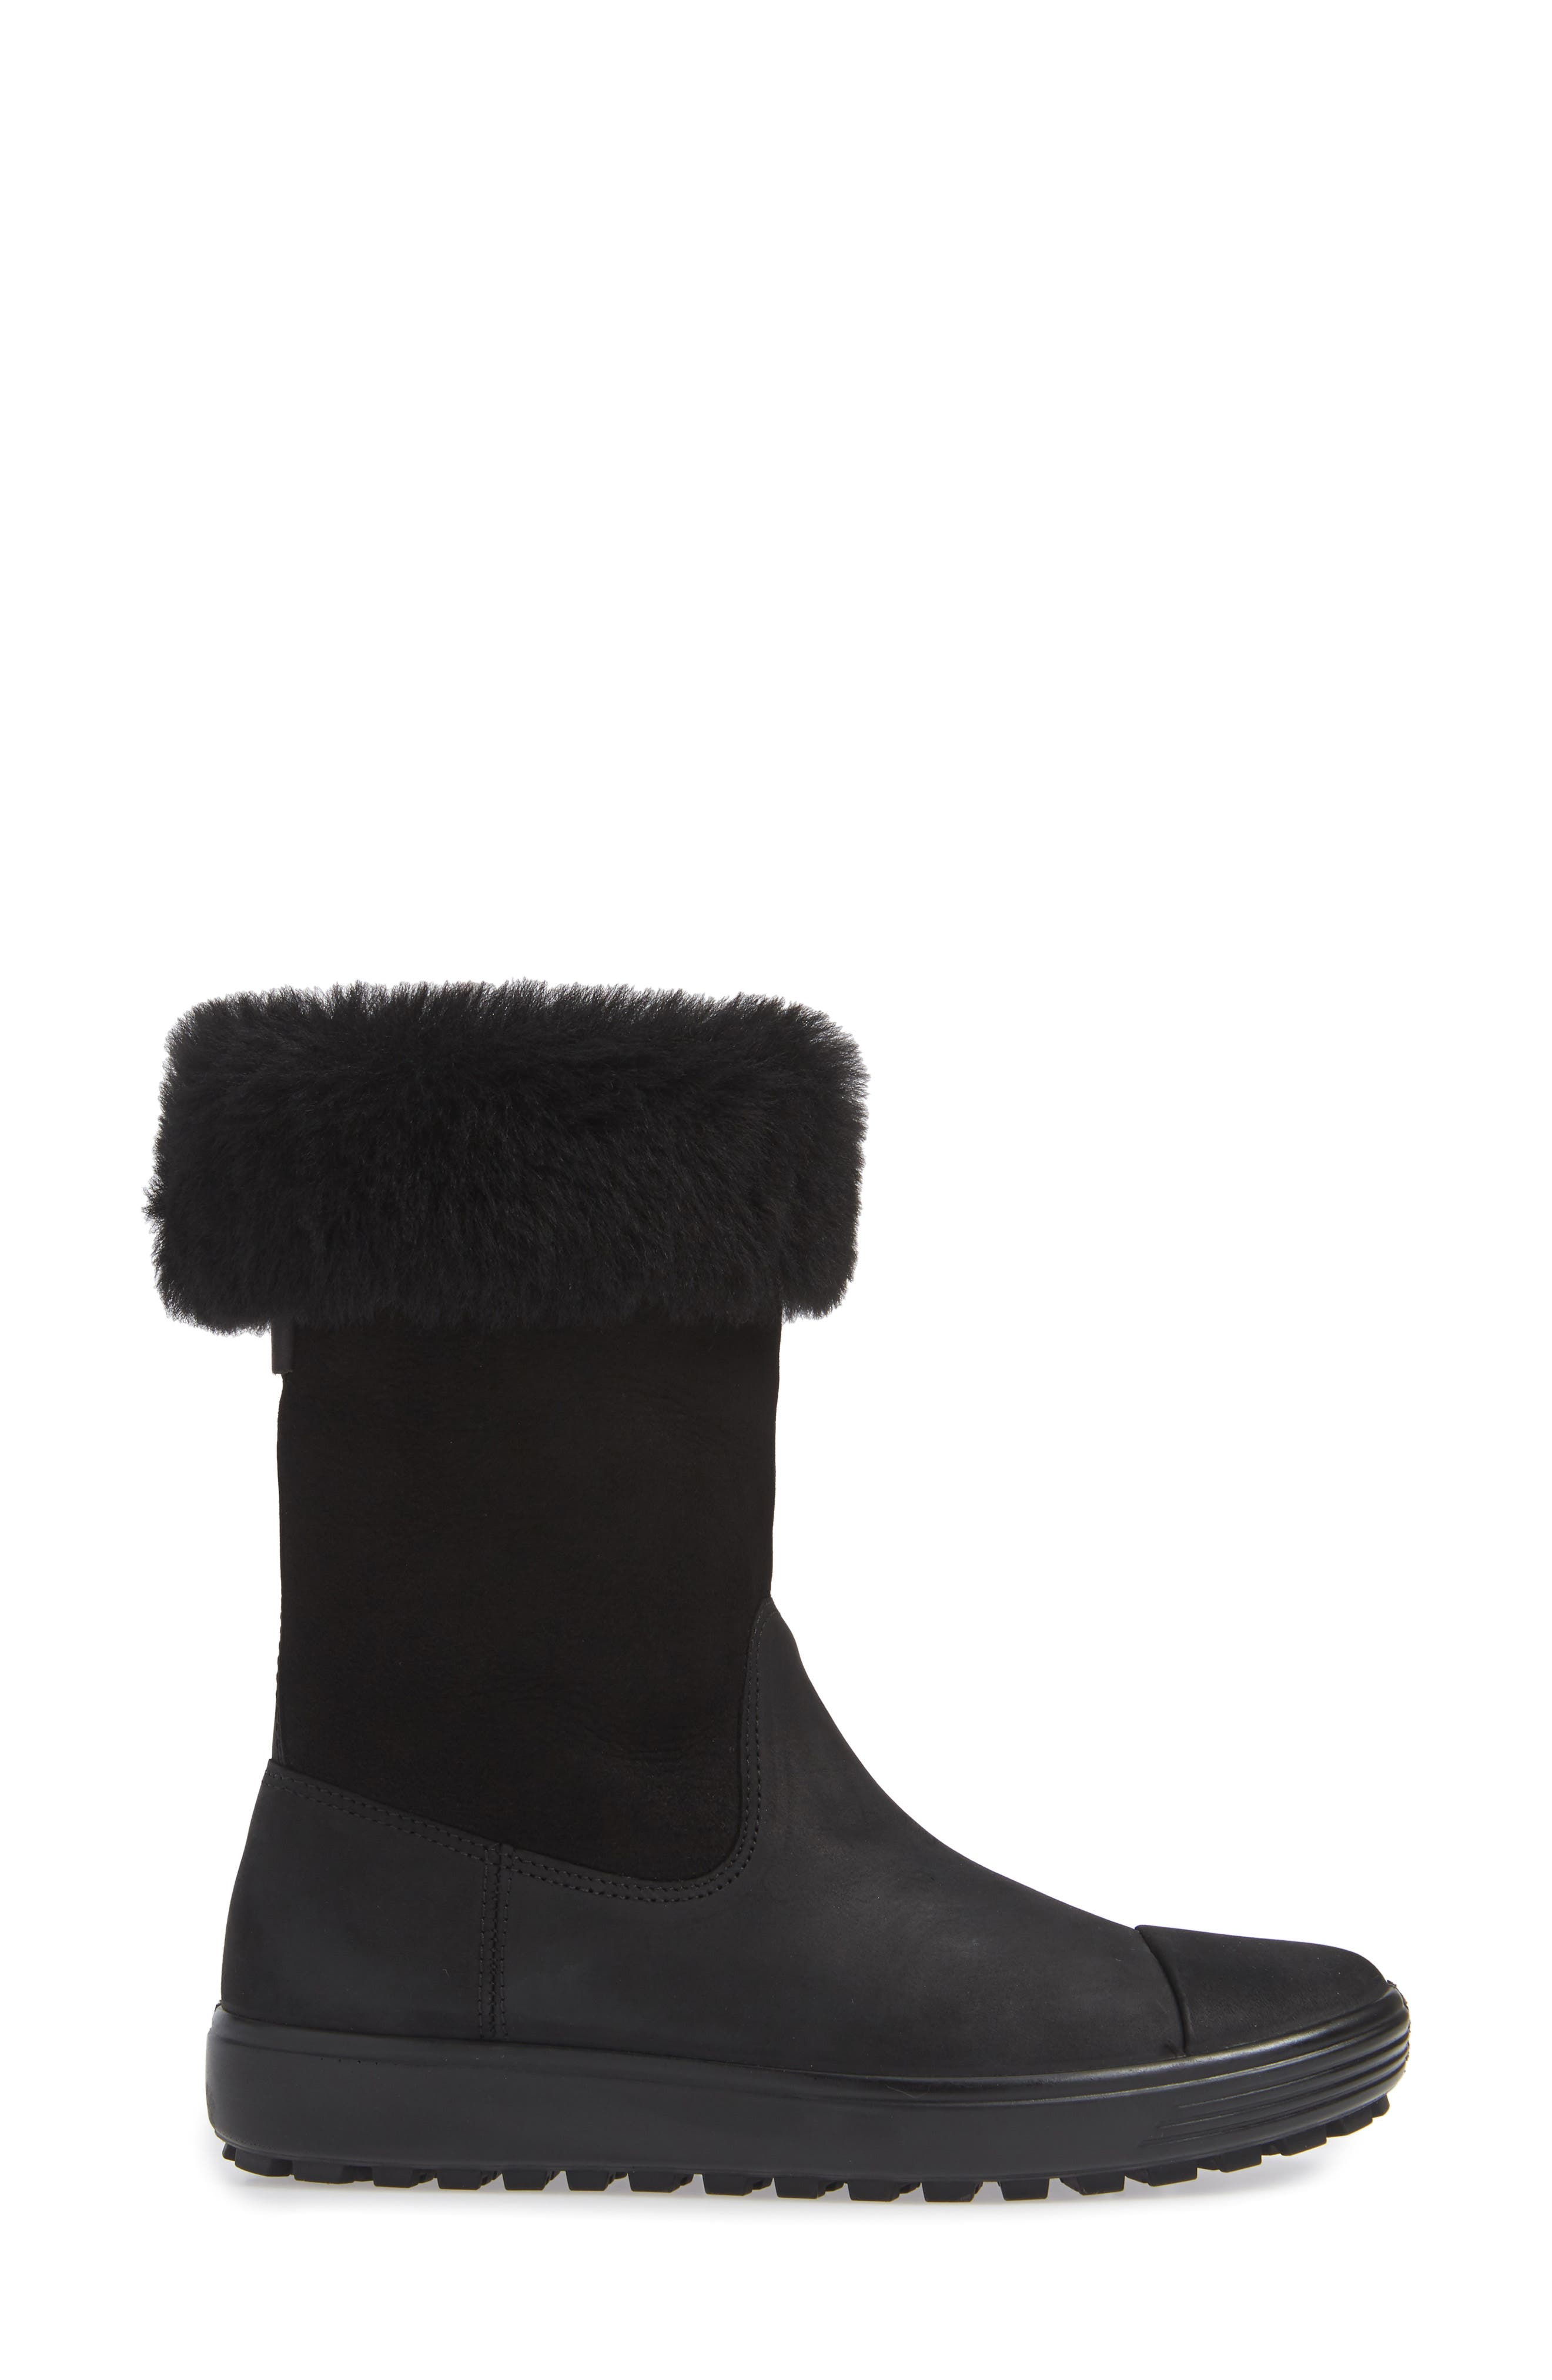 Soft 7 Tred Waterproof Genuine Shearling Lined Boot,                             Alternate thumbnail 4, color,                             BLACK NUBUCK LEATHER